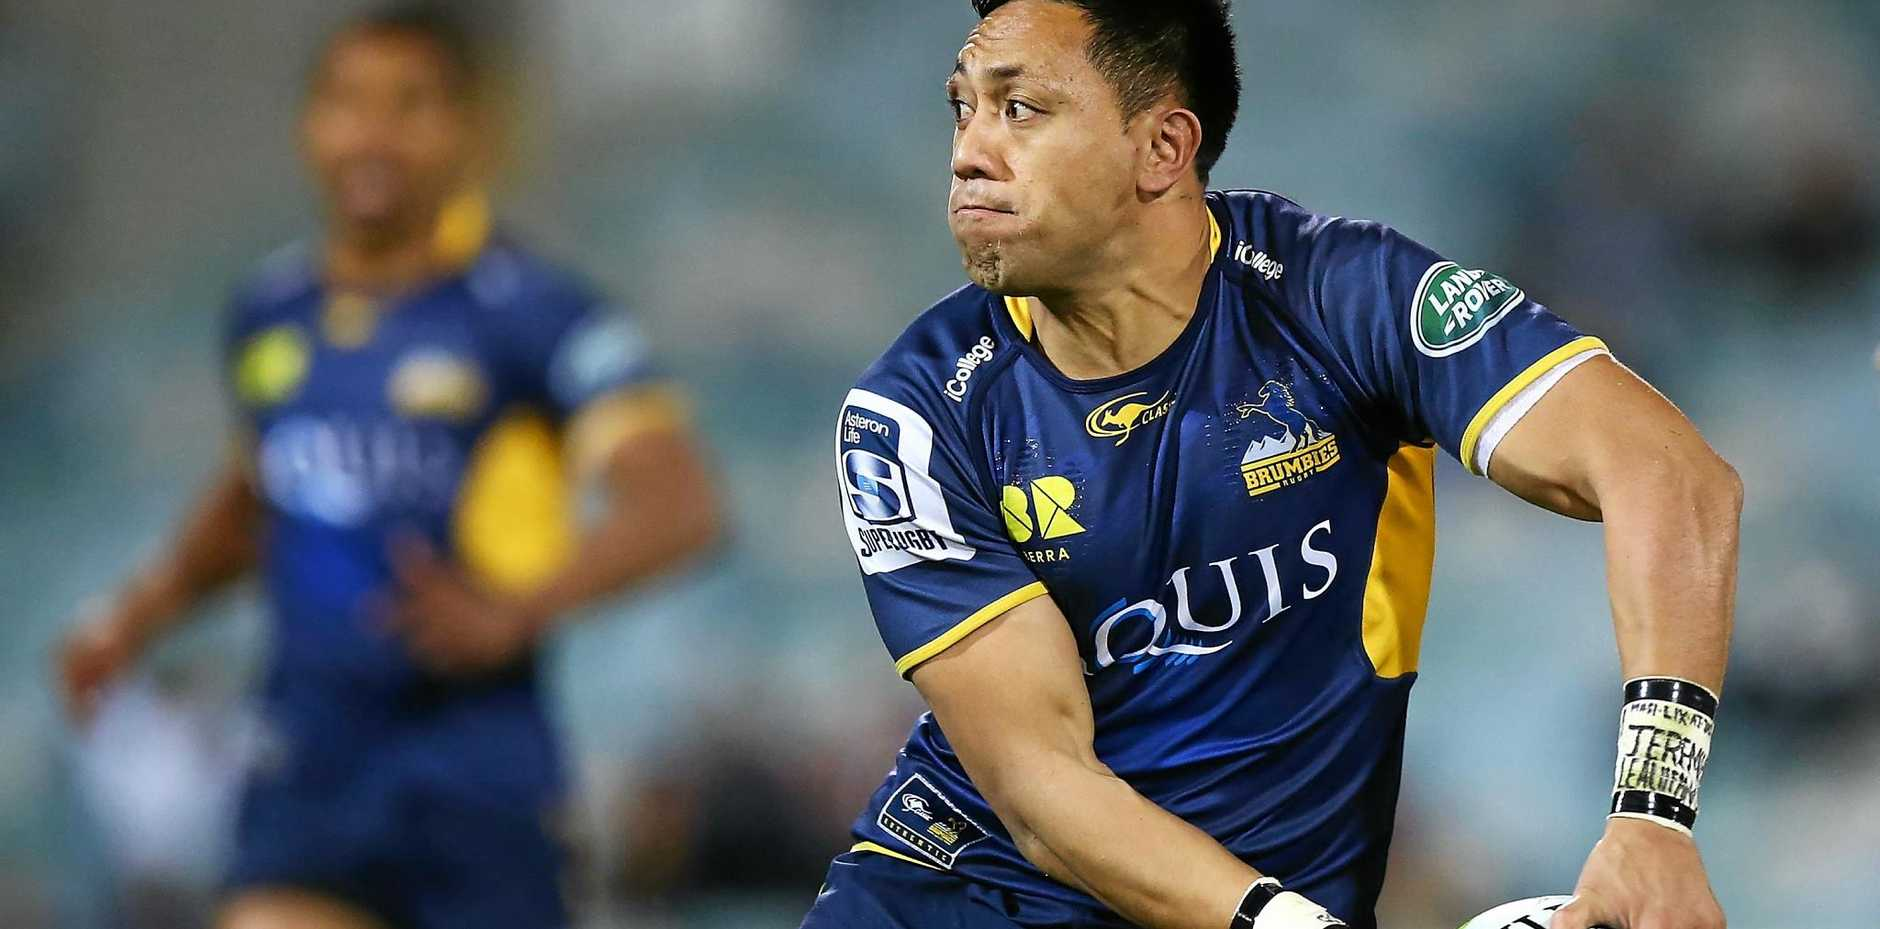 BIG RETURN: A year after he was diagnosed with leukaemia Christian Lealiifano could make his Brumbies return against the Hurricanes in the Super Rugby quarter-final.